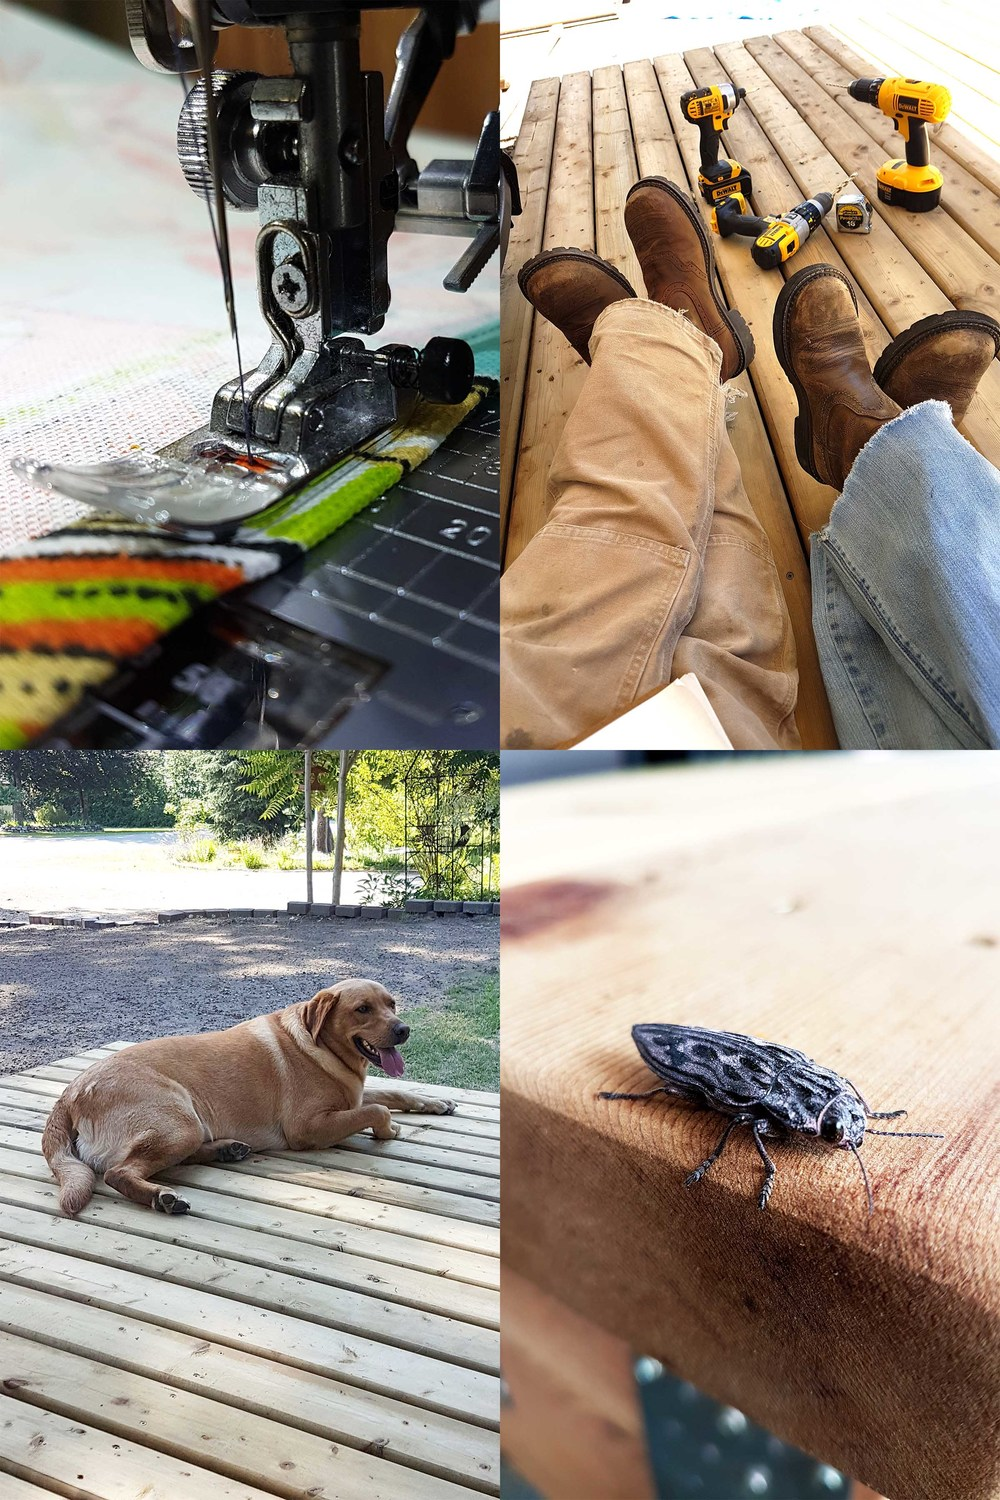 Working on our personal touches...we aren't the only ones who enjoy the deck, as we've had some random visitors show up!